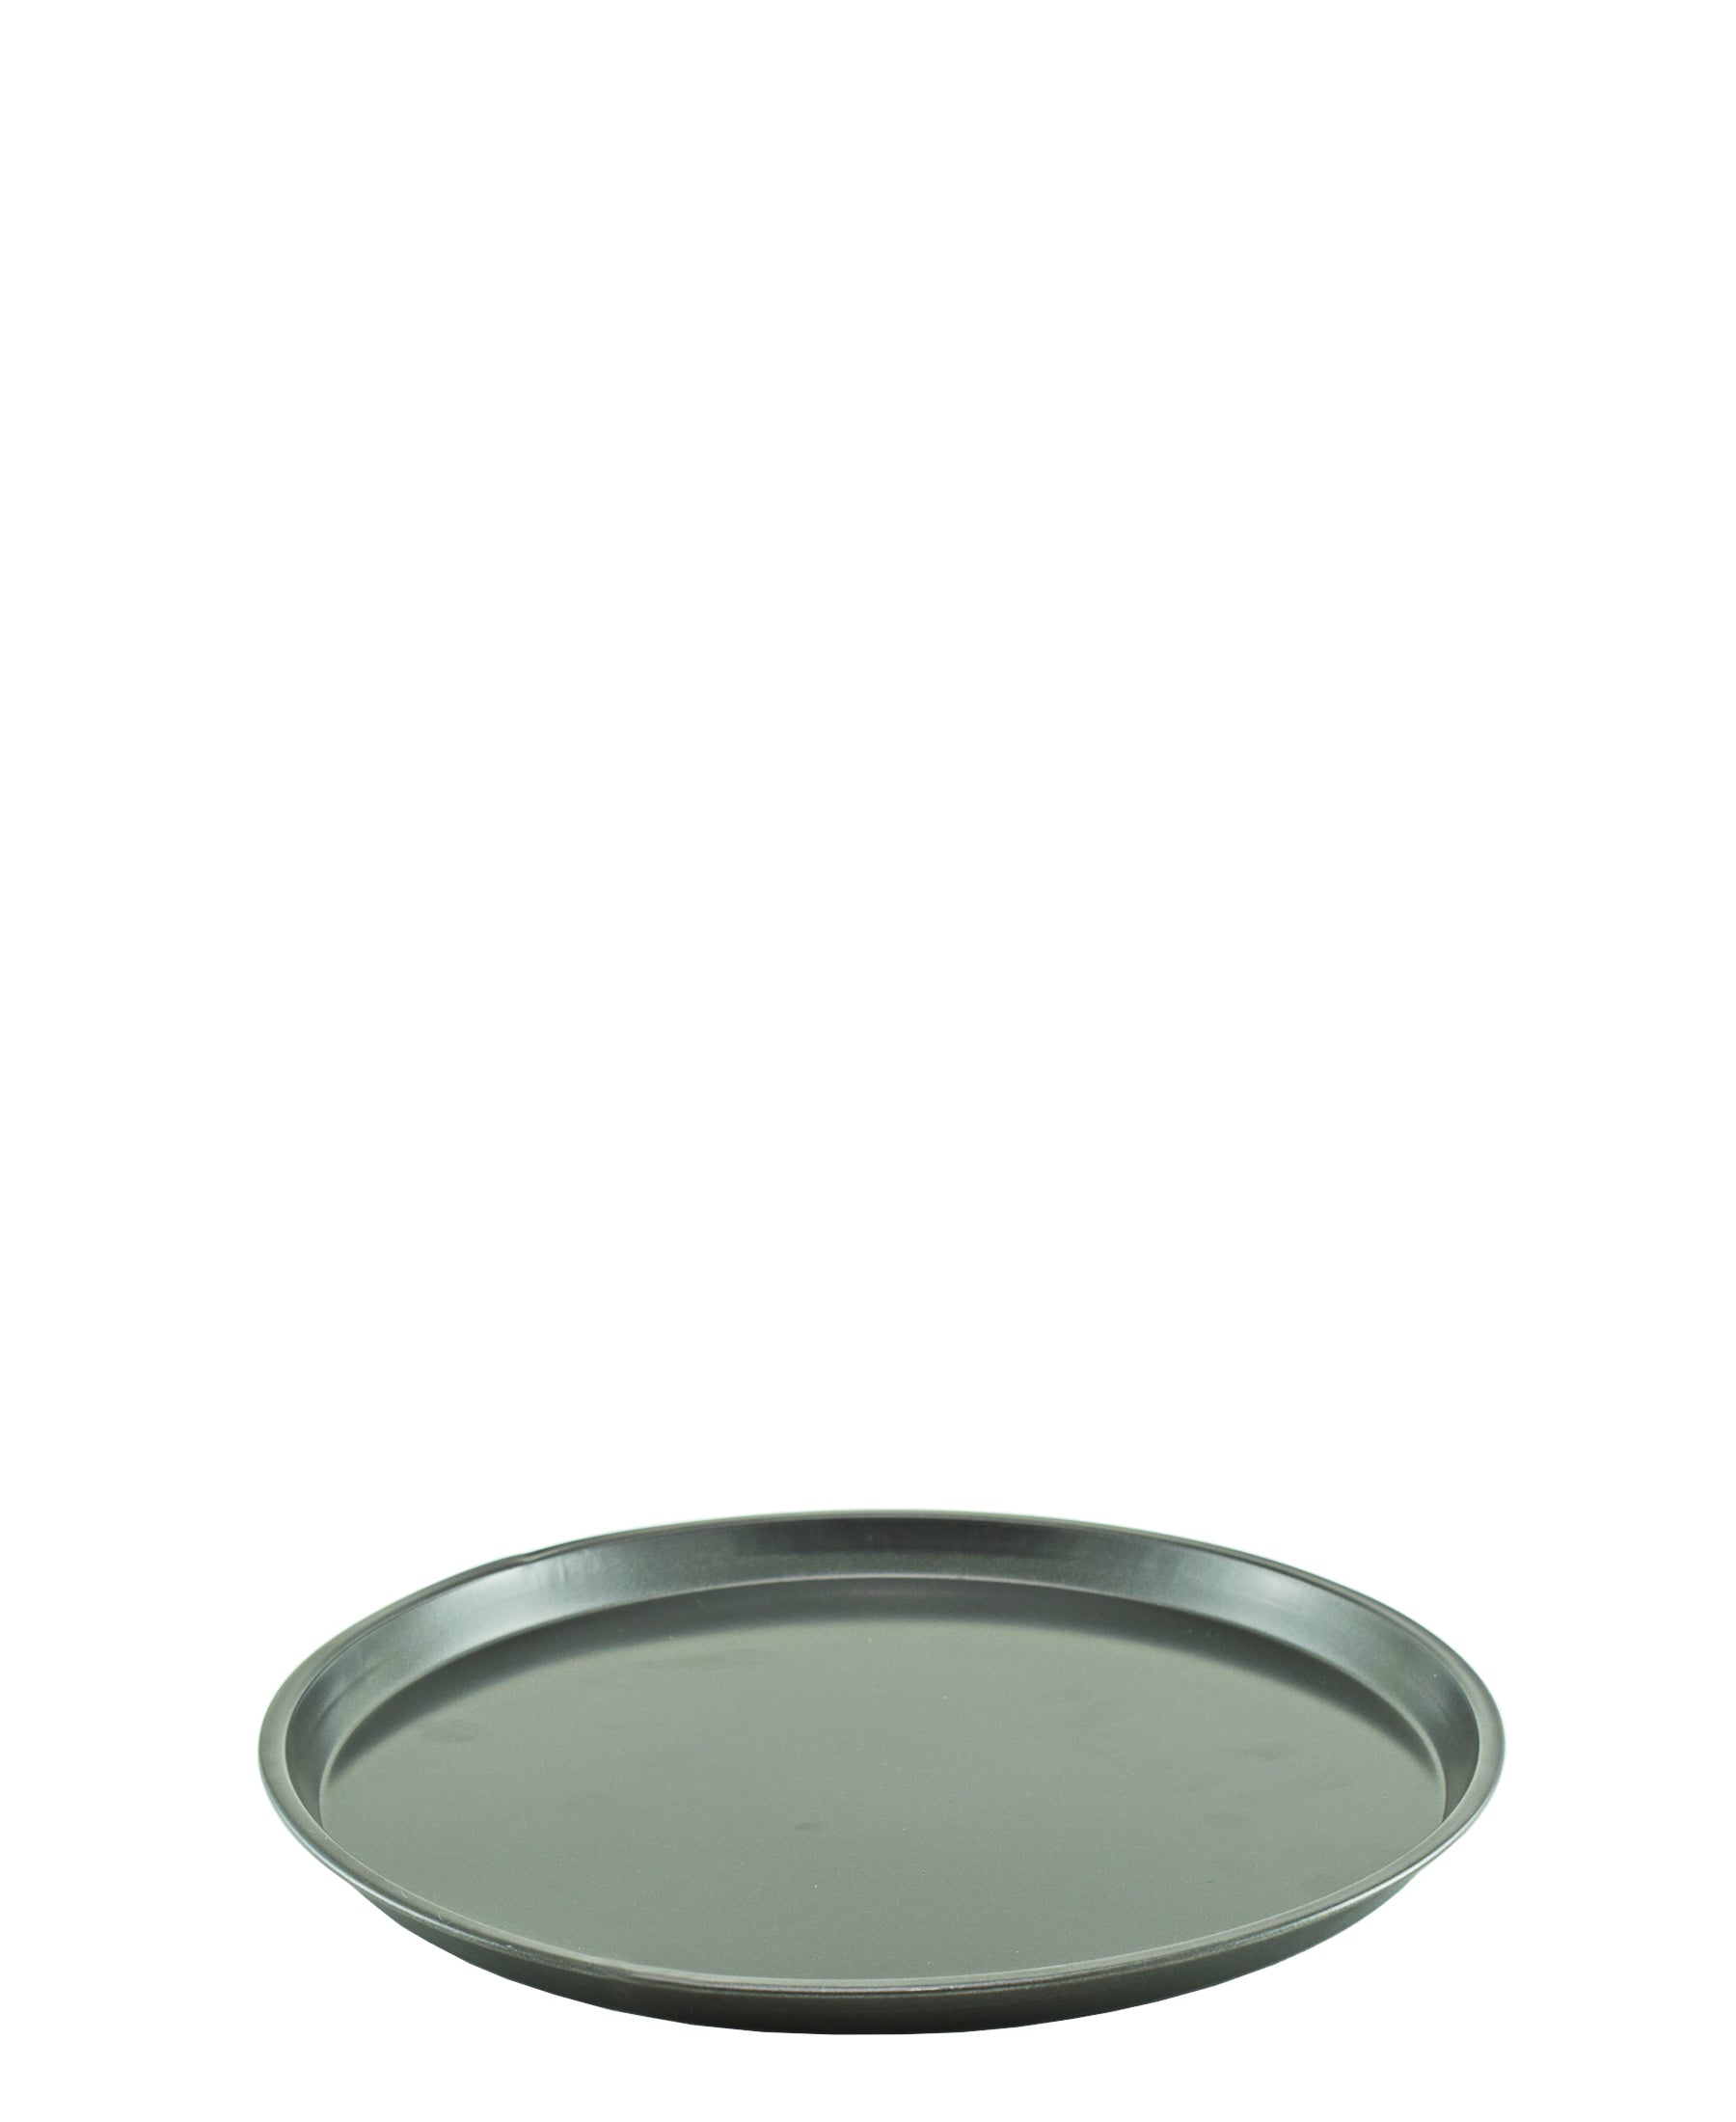 Stainless Steel Round Baking Tray